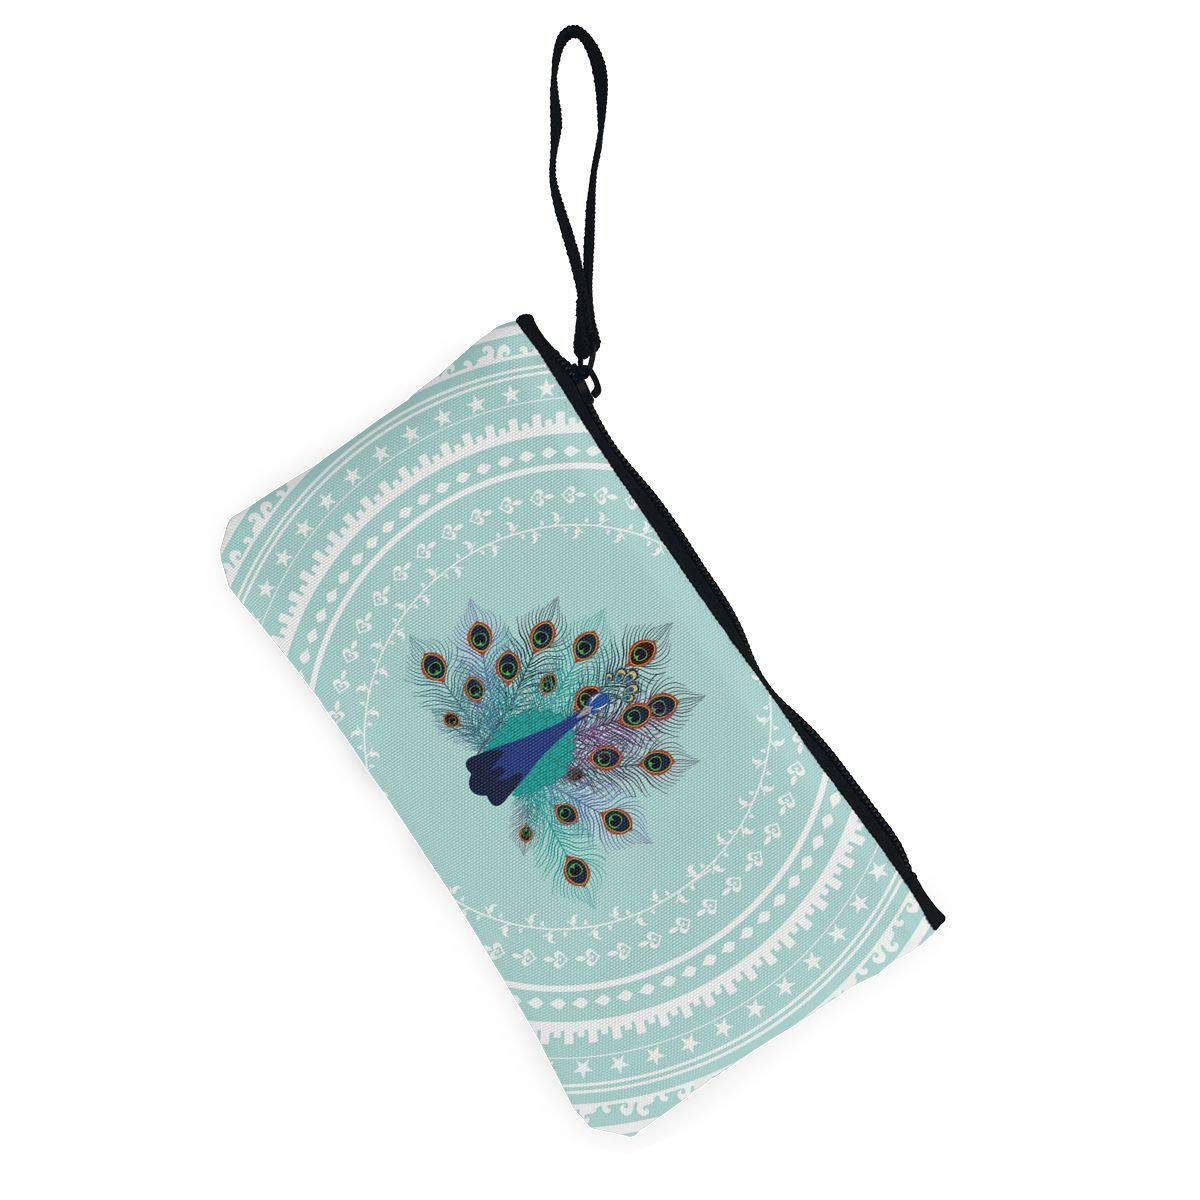 Maple Memories Peacock Animal Portable Canvas Coin Purse Change Purse Pouch Mini Wallet Gifts For Women Girls